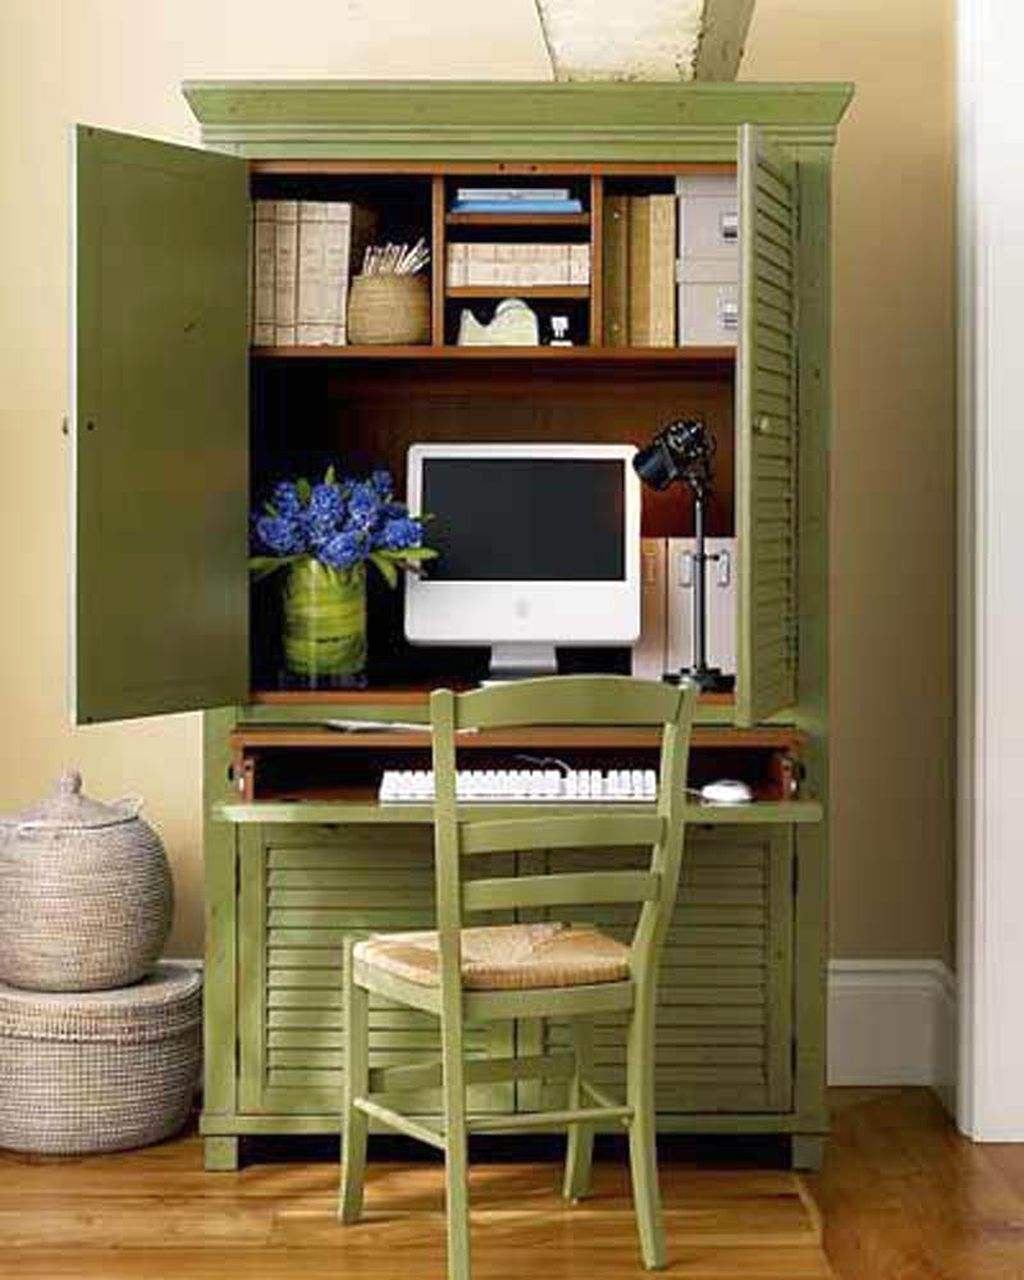 Green cupboard home office design ideas for small spaces for Tiny home office ideas